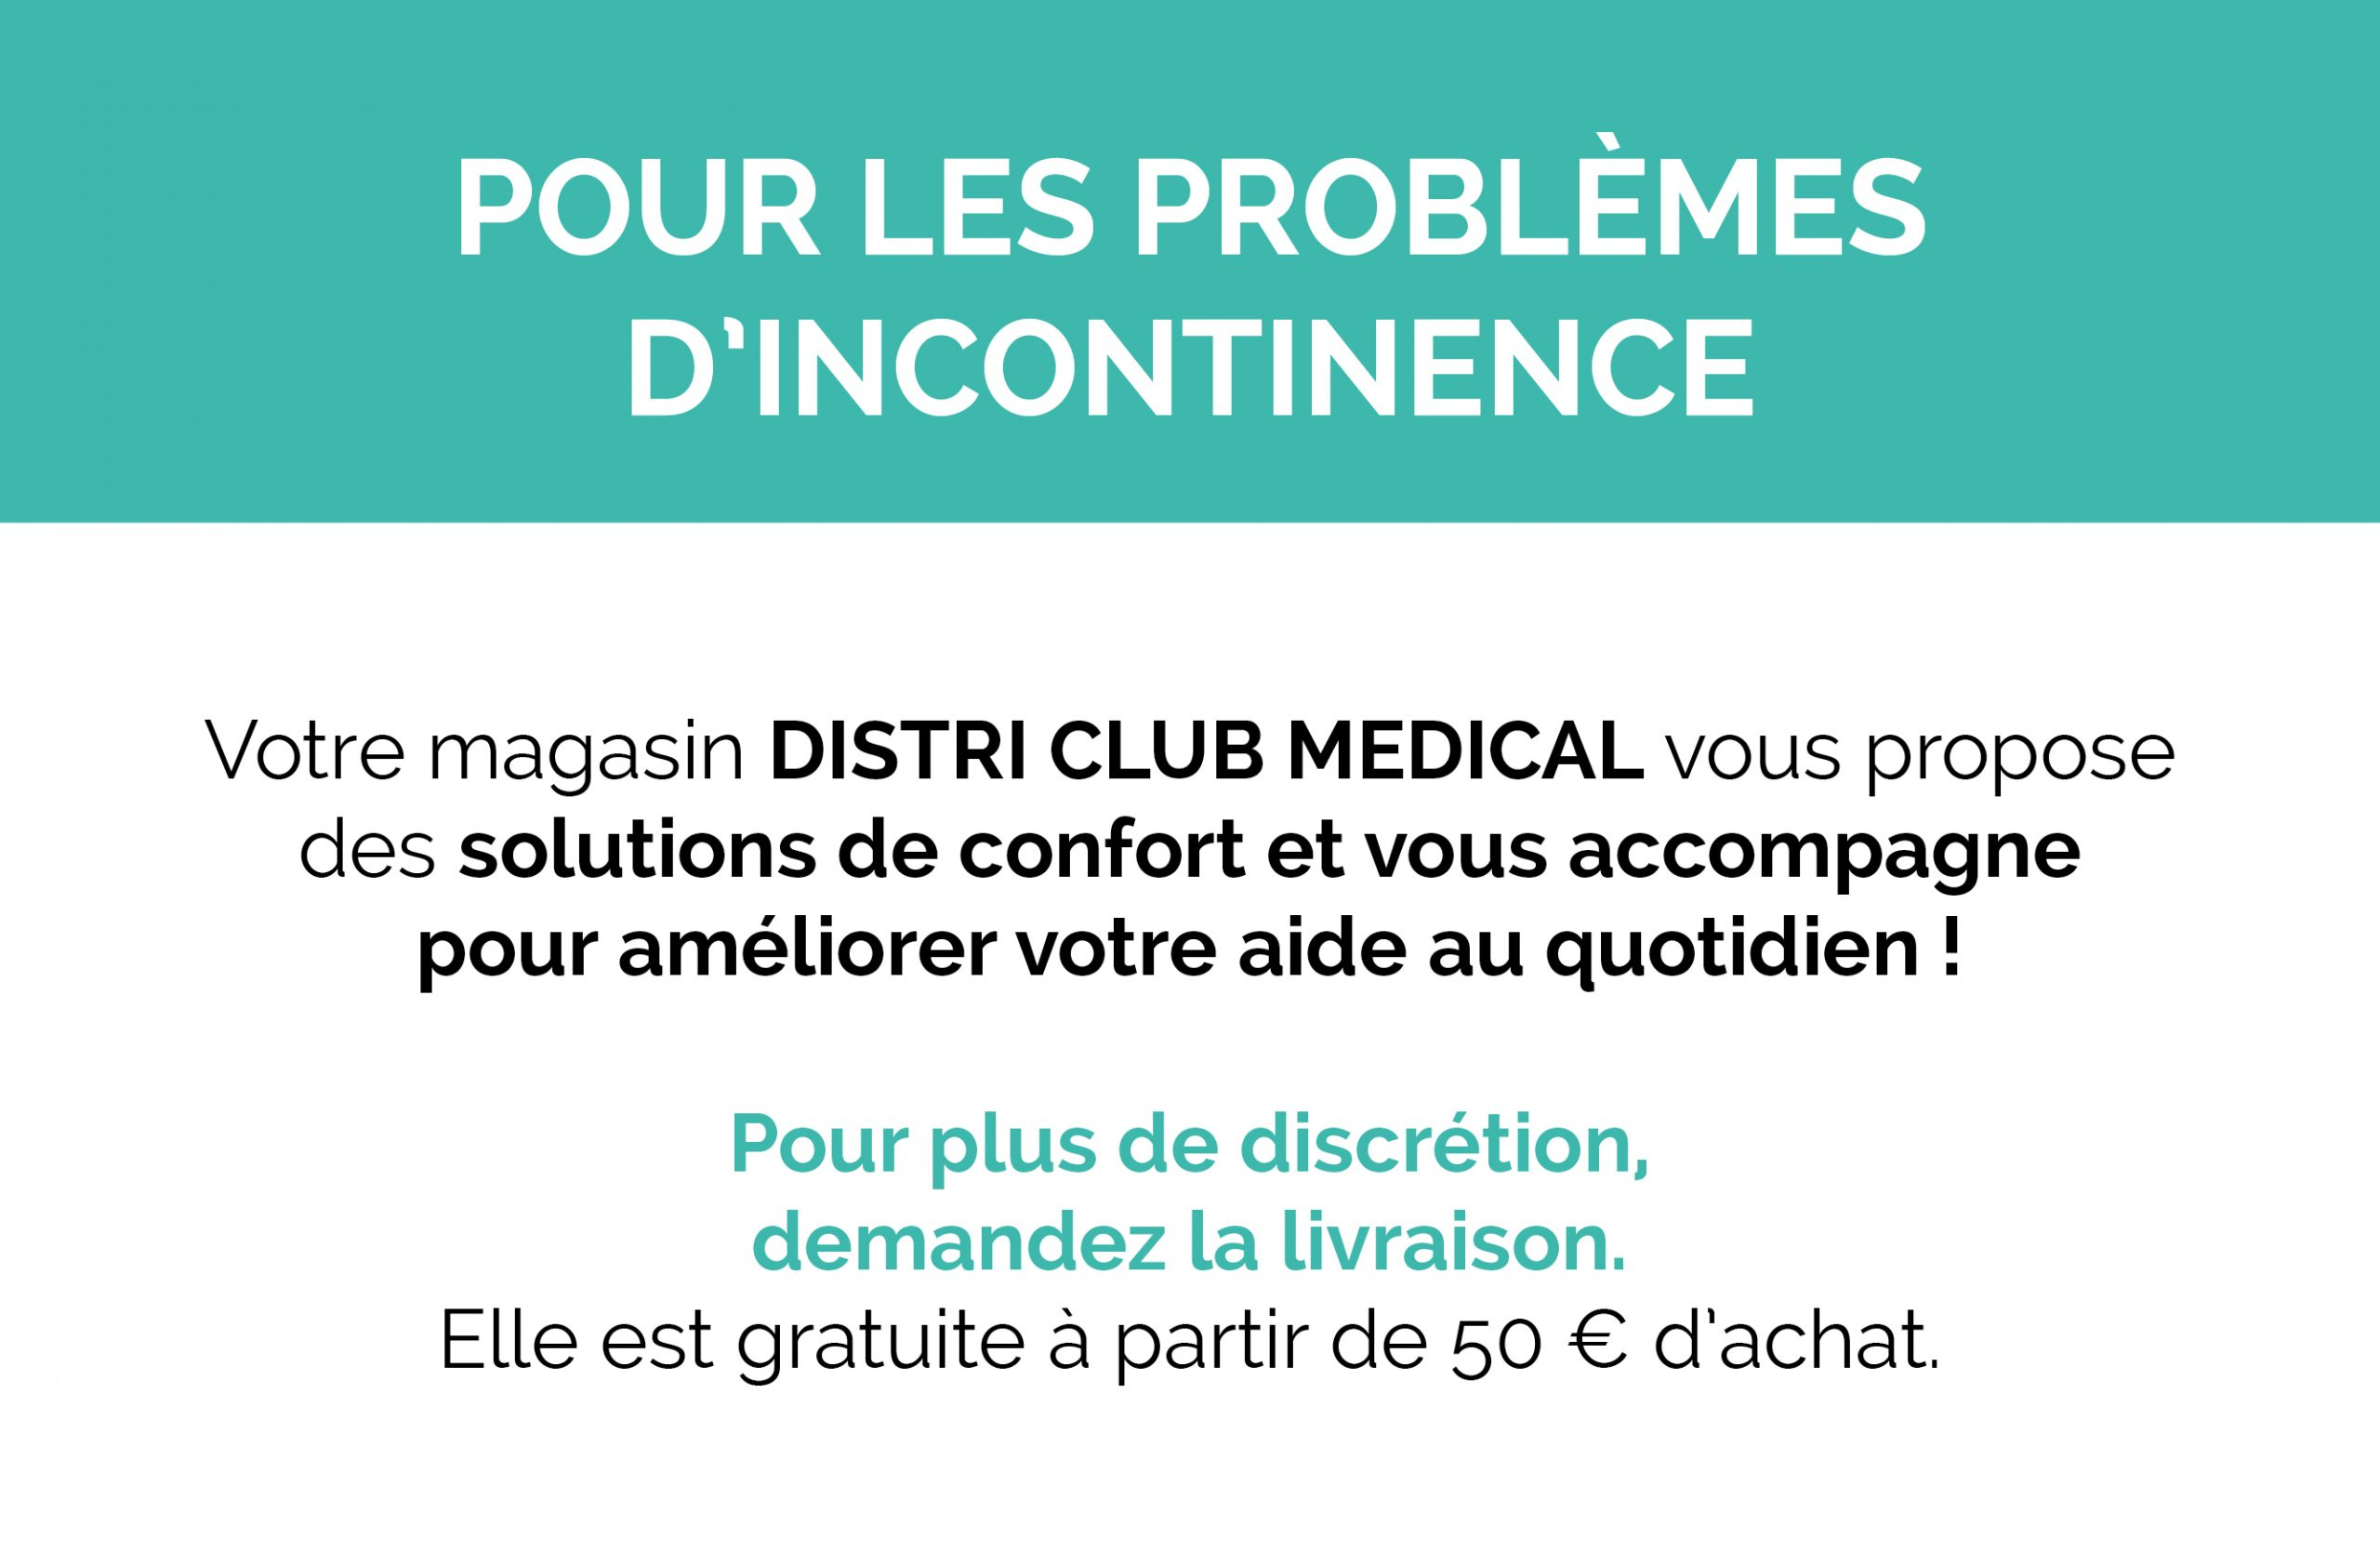 pont-eveque-incontinence-12